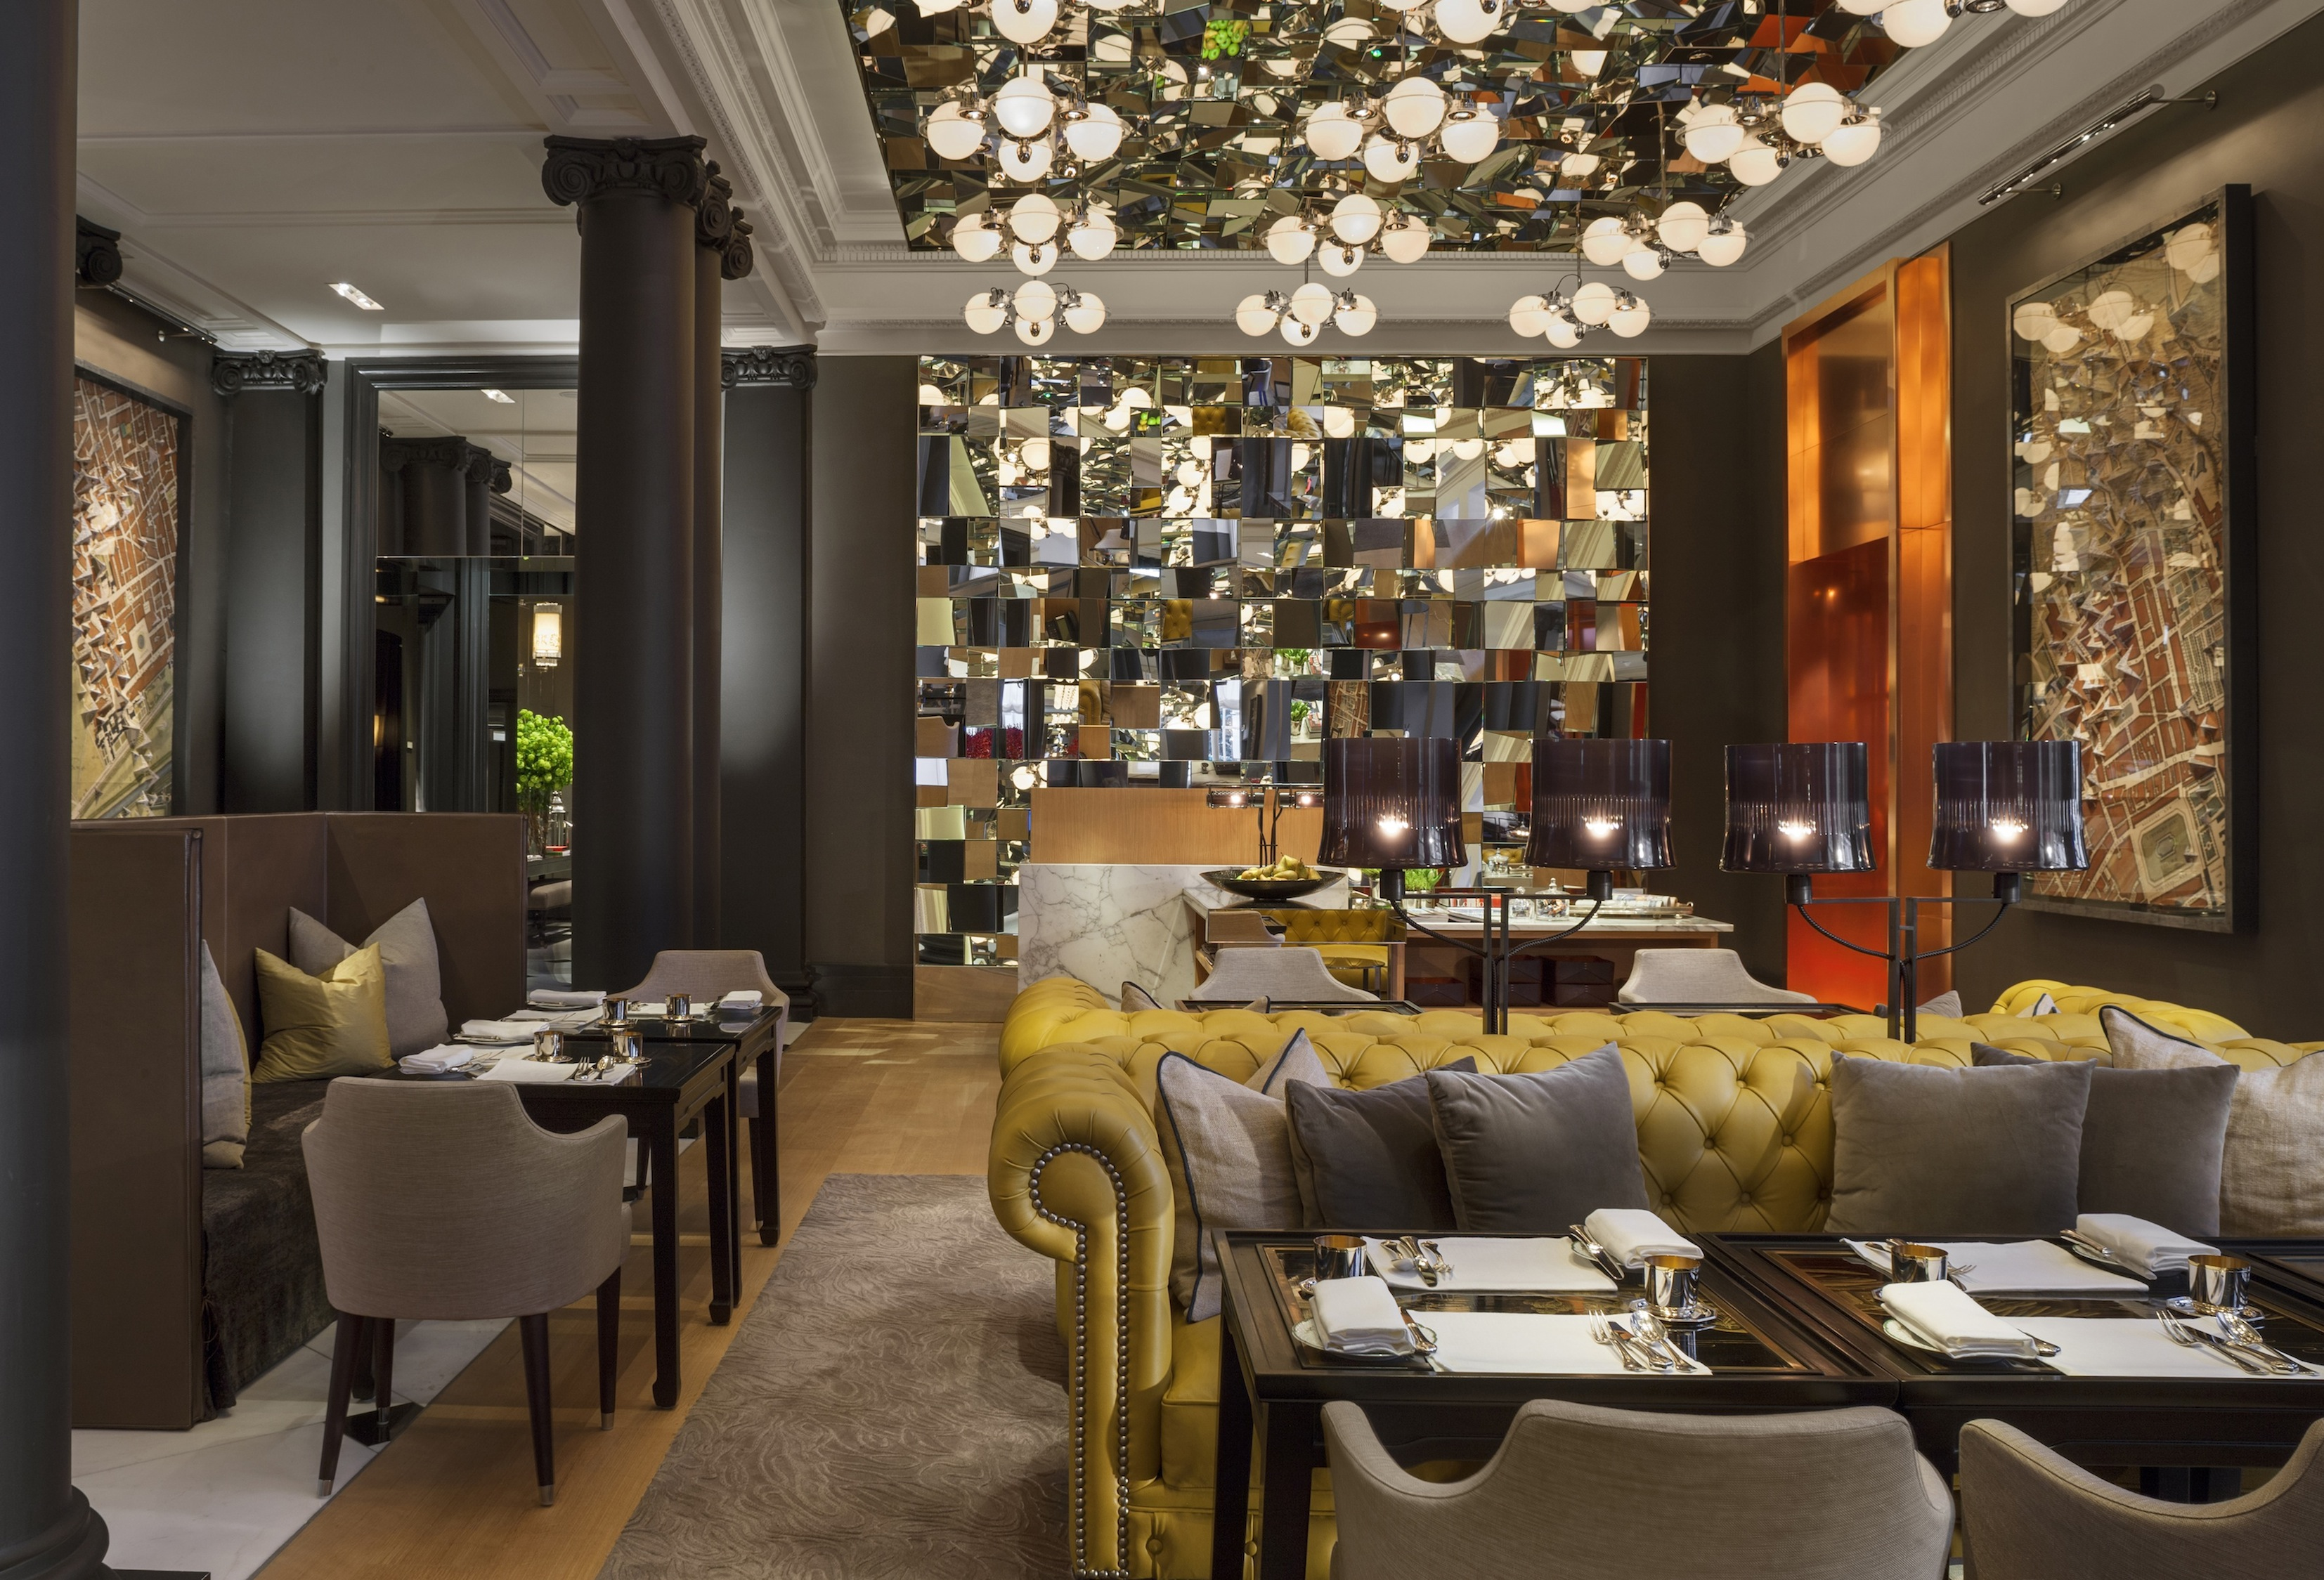 The Rosewood Hotel London Afternoon Tea Review Olive